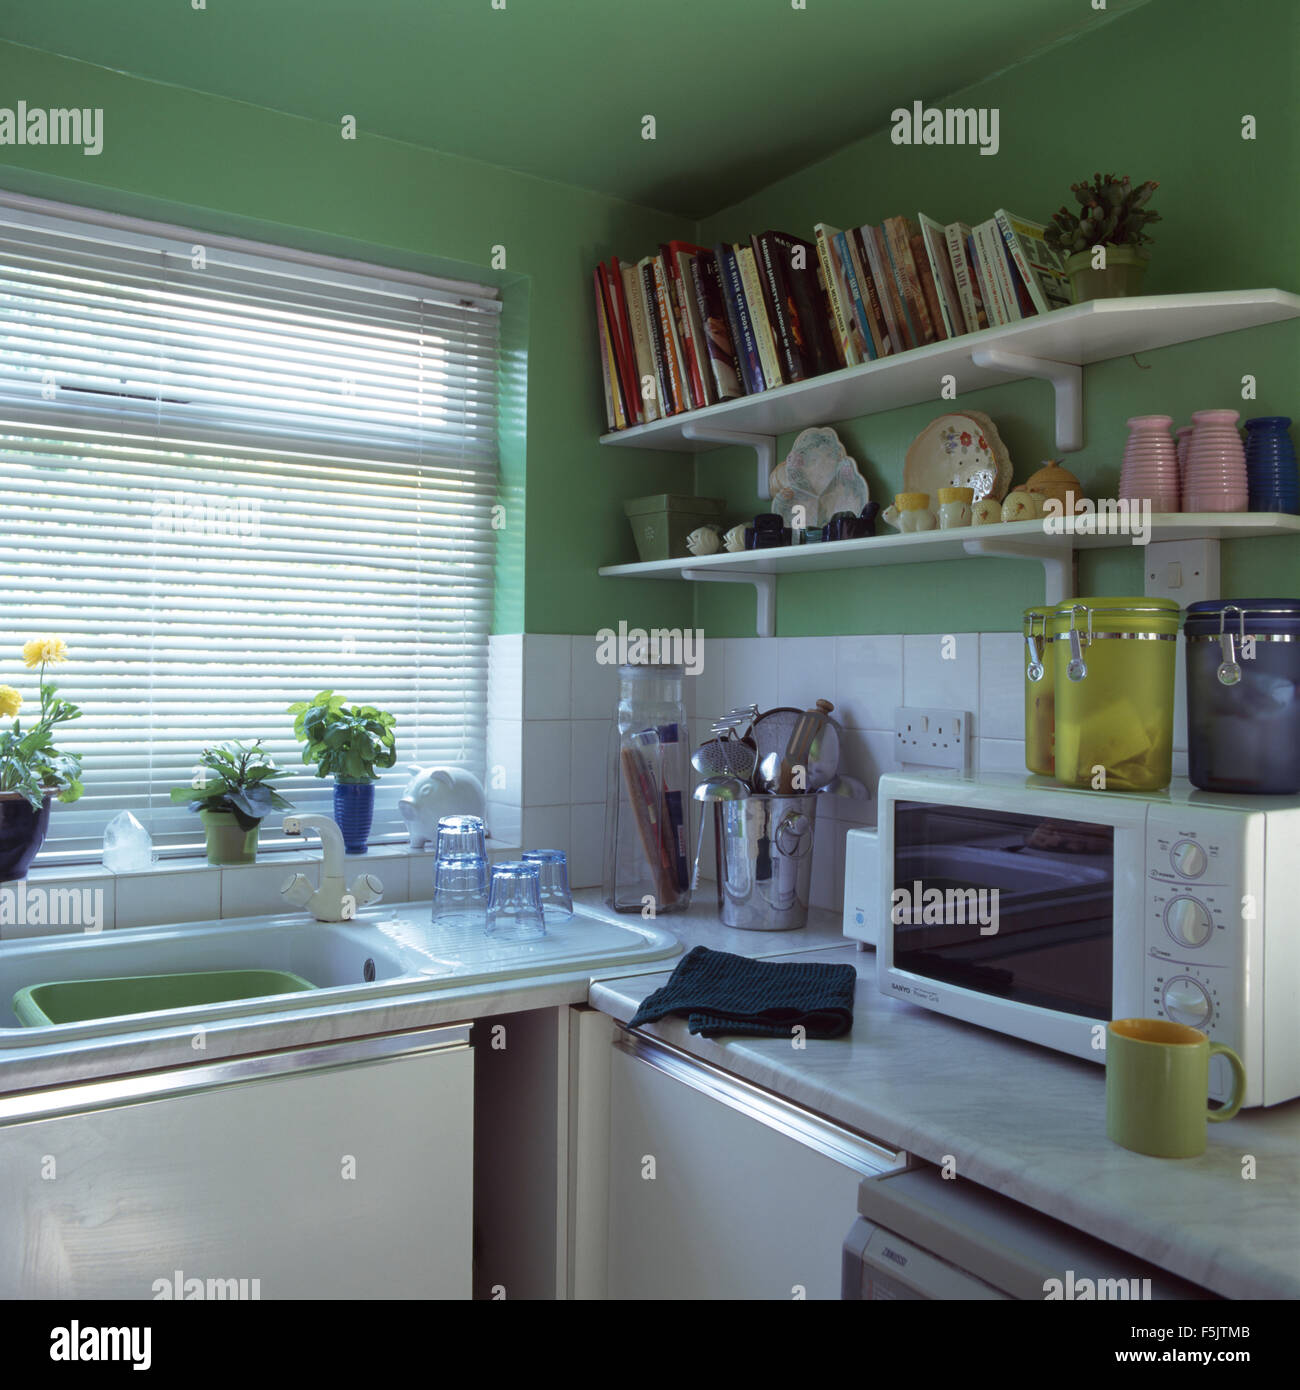 Kitchen shelves for microwave - Open Shelves Above Worktop With Microwave In A Green Economy Style Nineties Kitchen